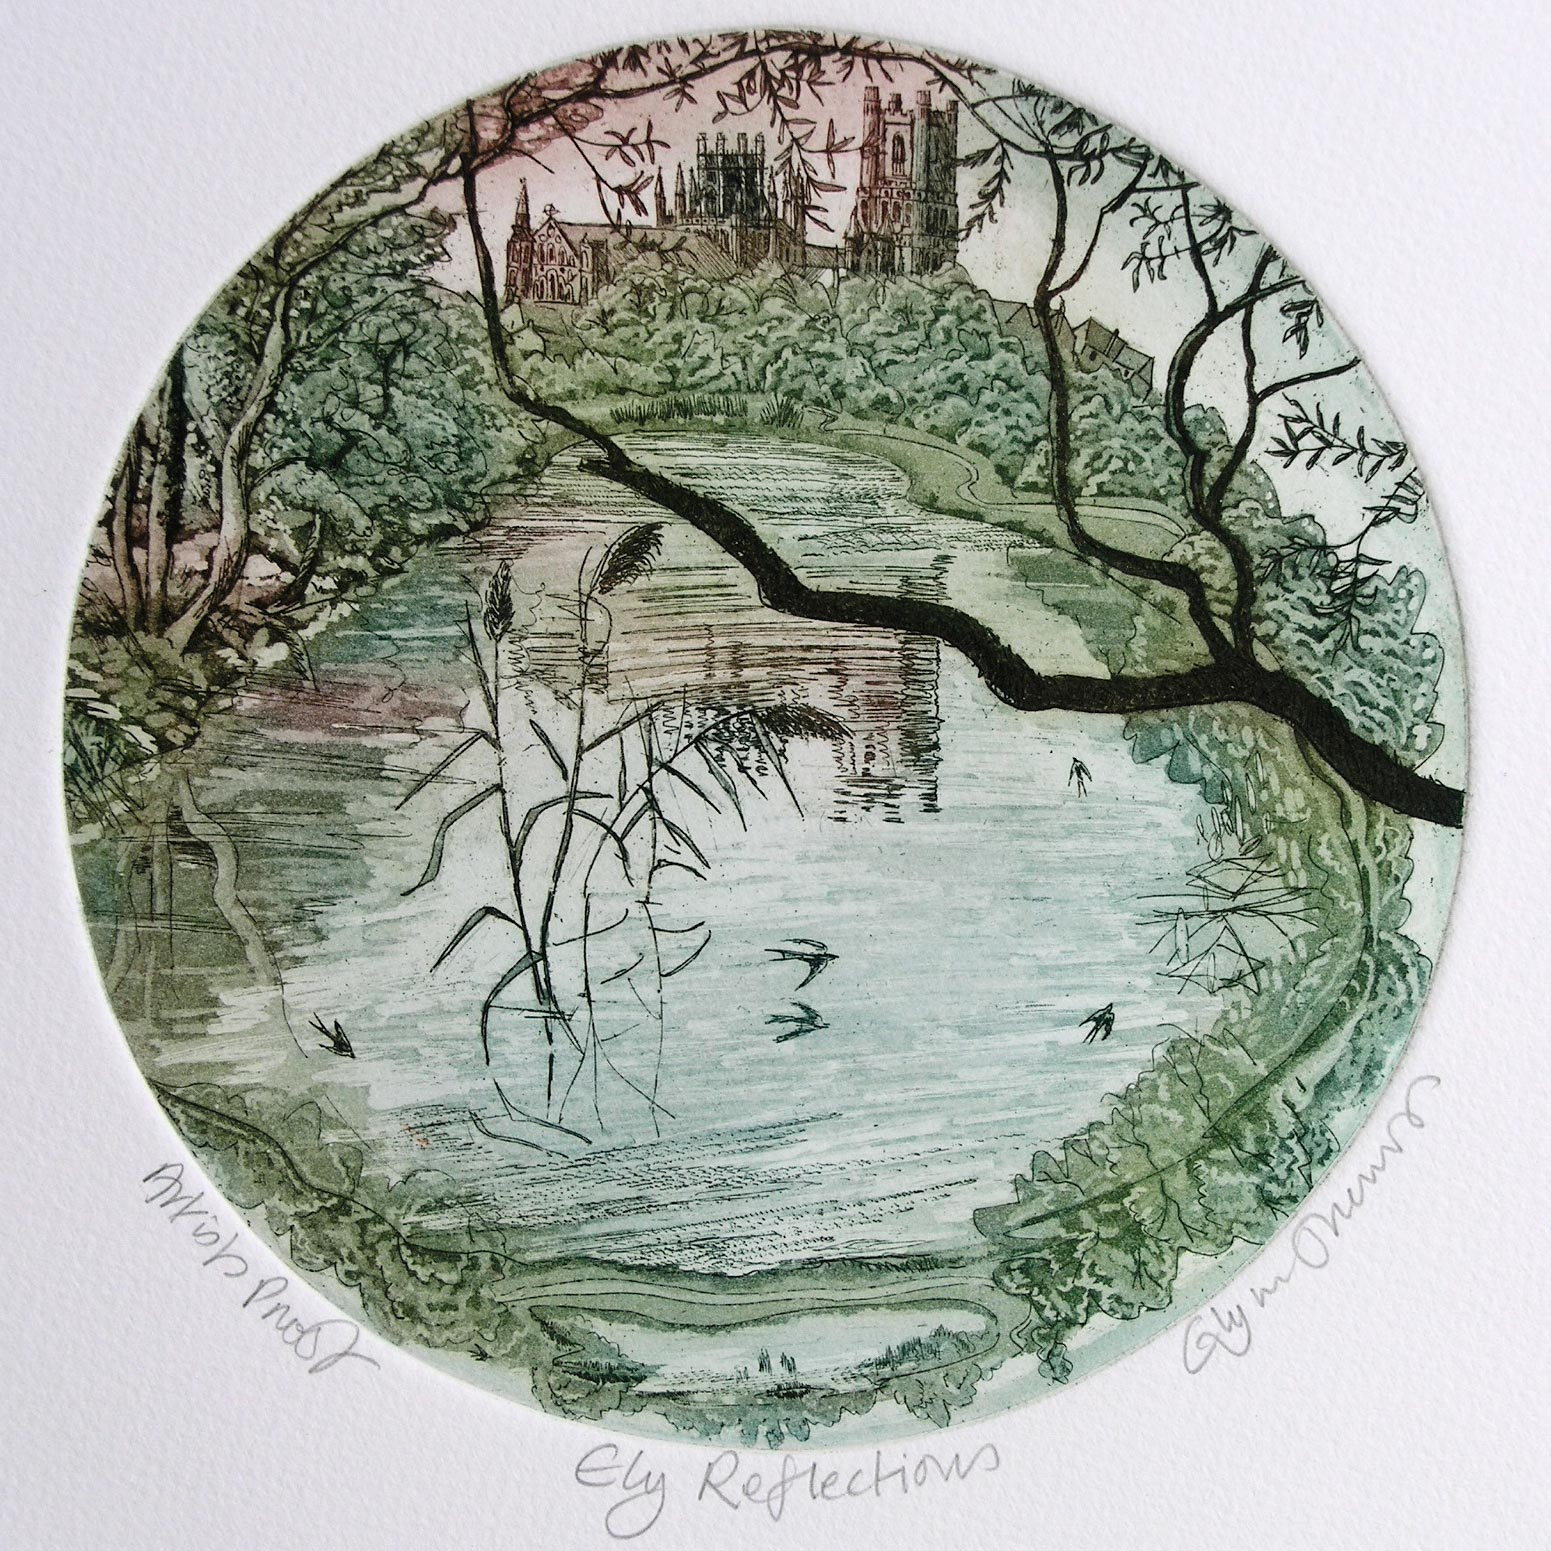 Ely Reflections   etching   35 x 31cm  £137 (framed)